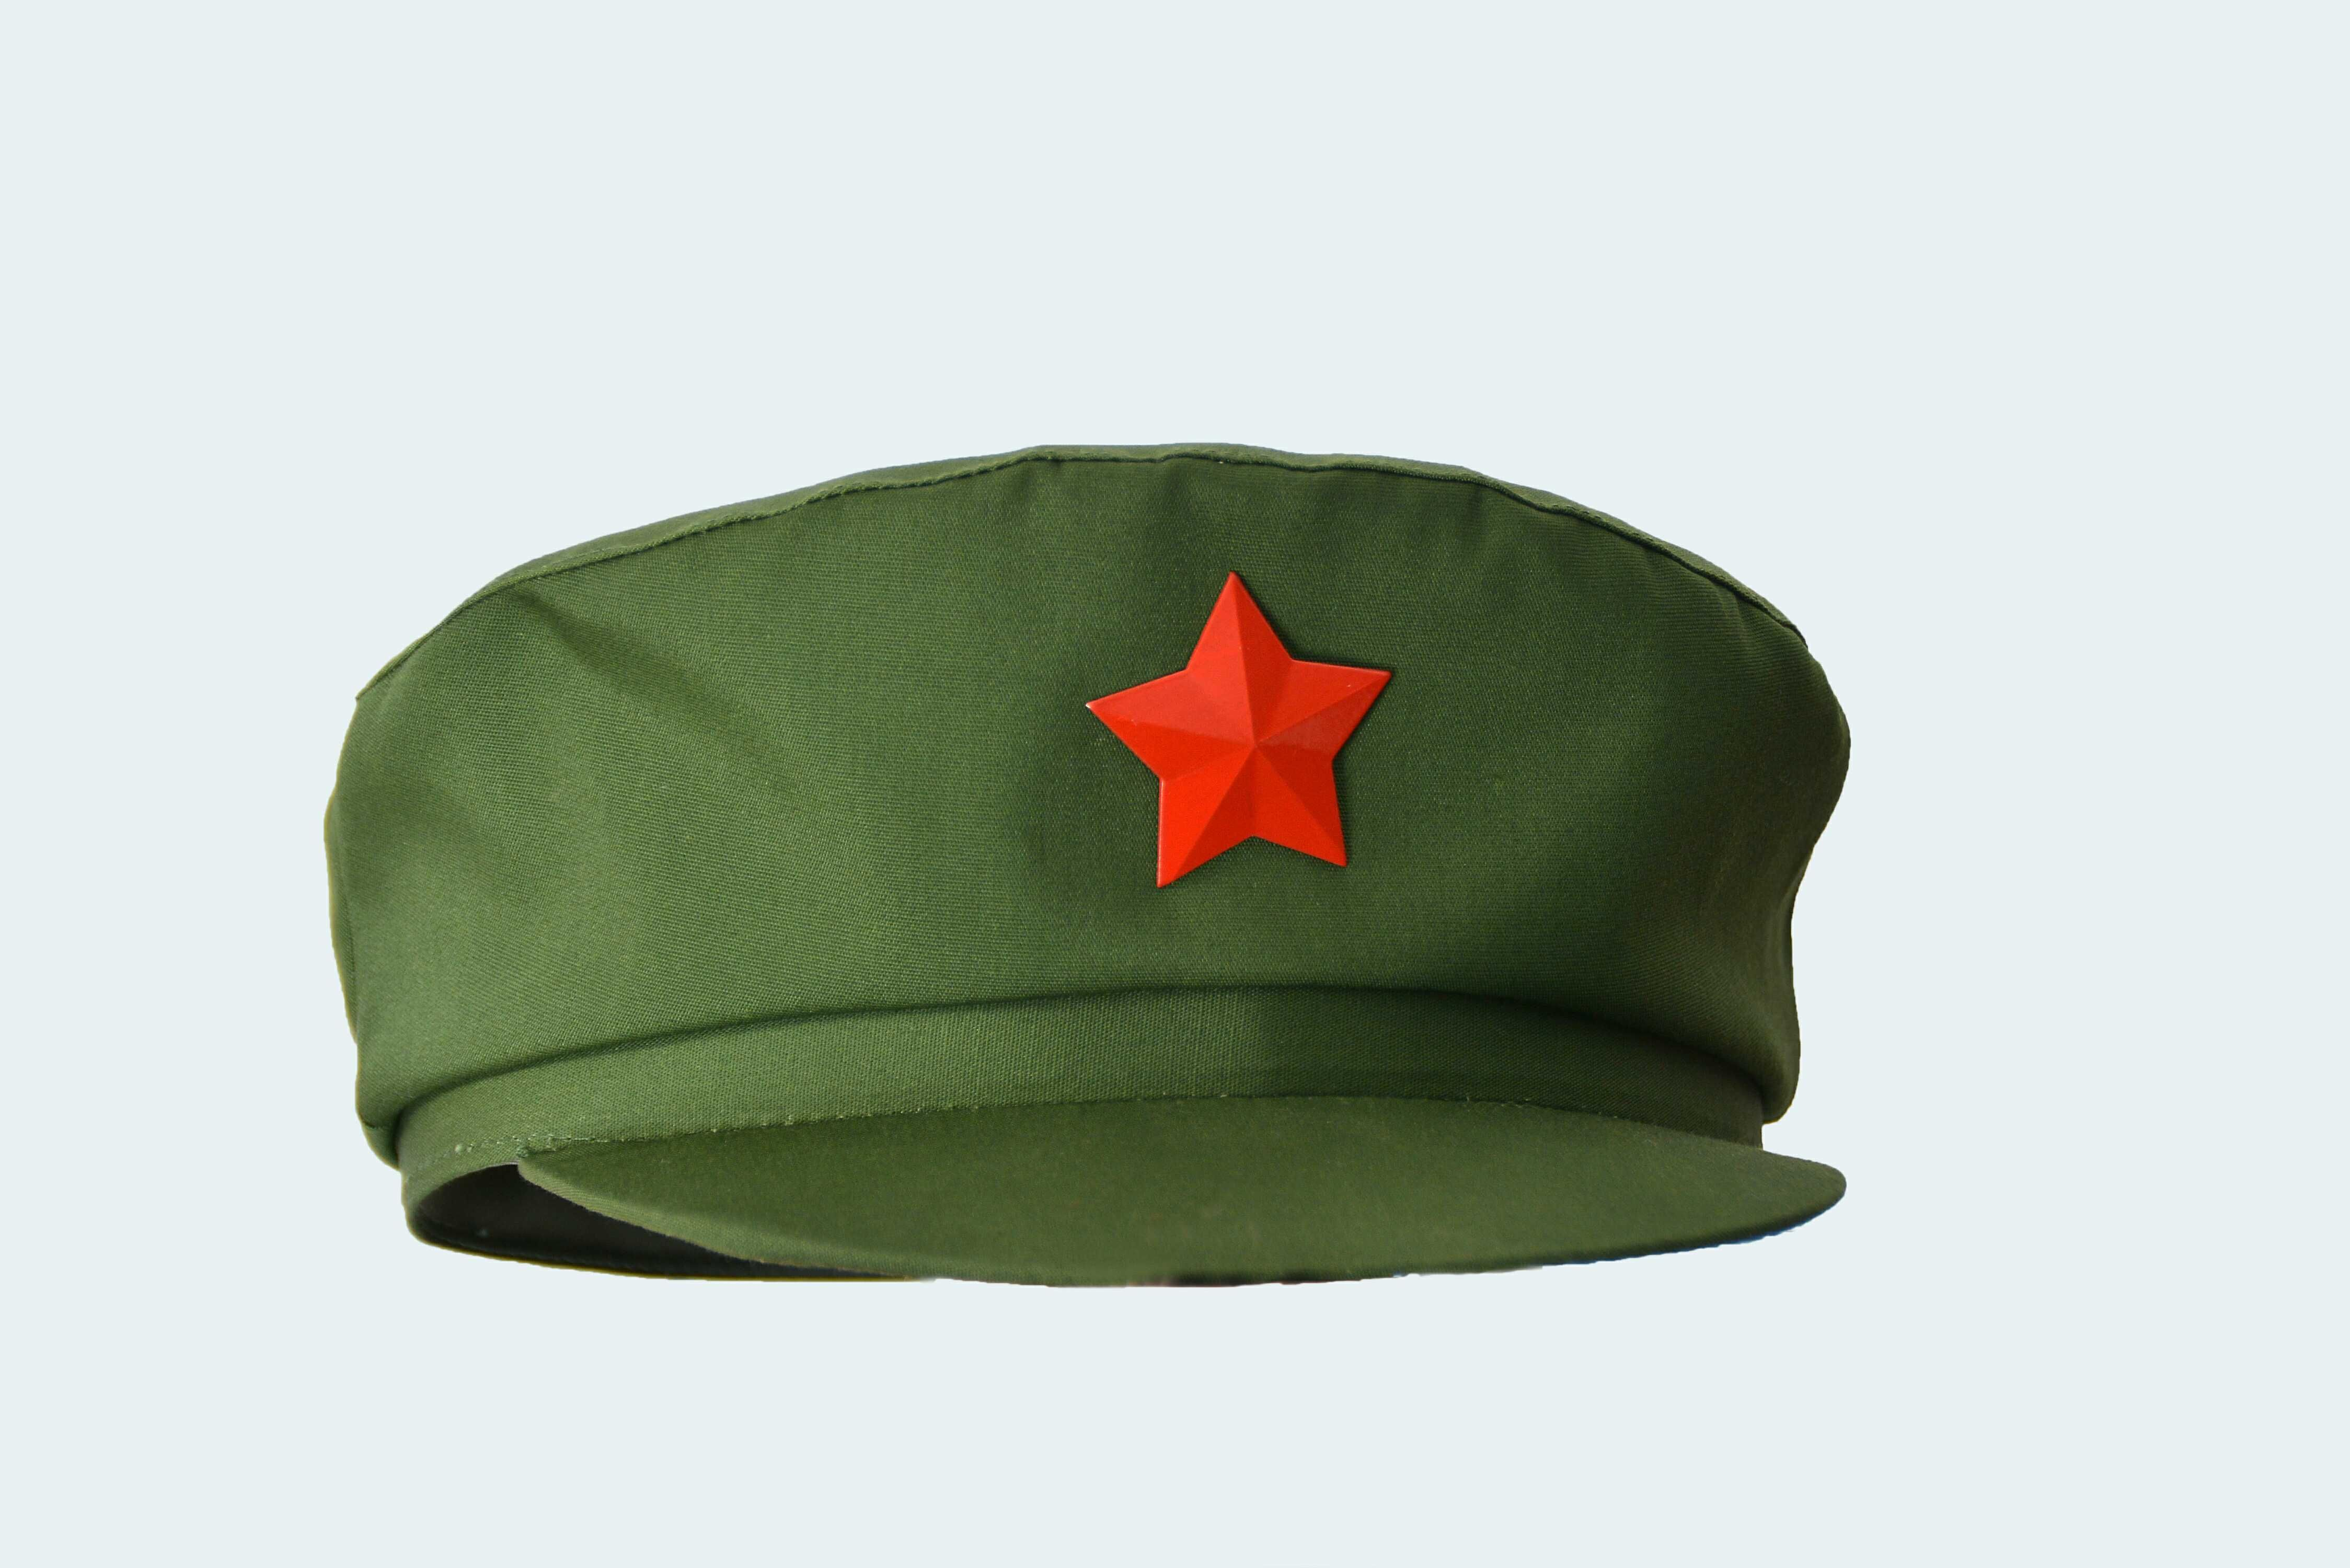 83d0604534c 中国人民解放军65式军服解放帽   Type-65 field cap of the Chinese People s Liberation Army